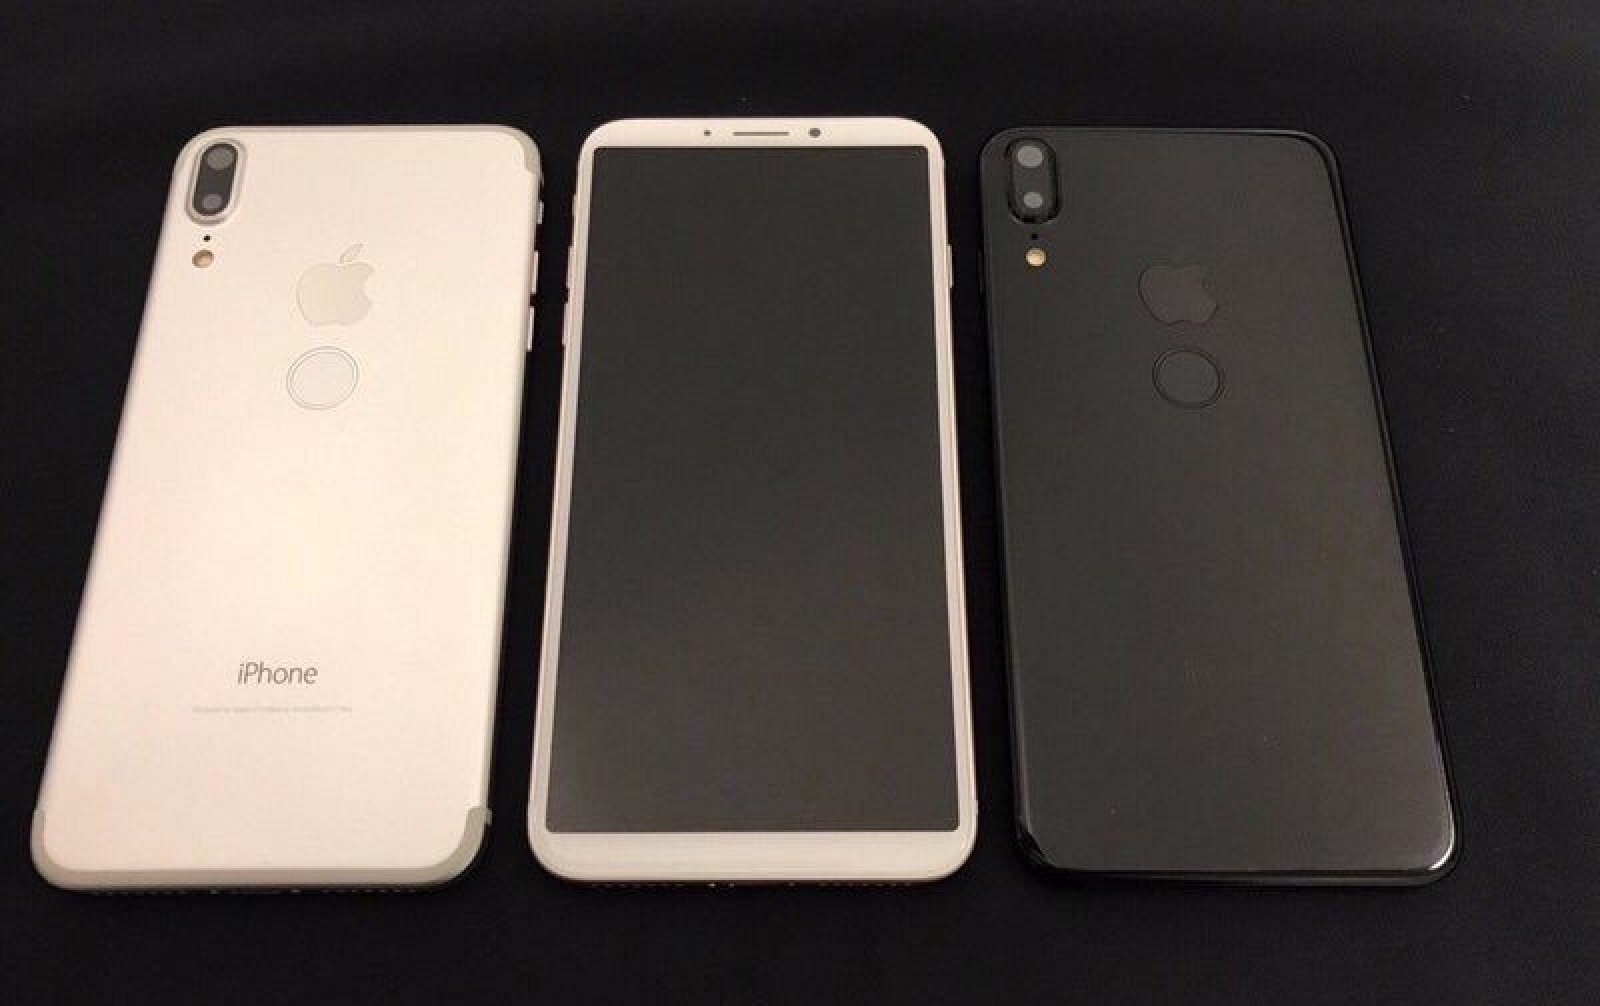 New iPhone 8 Dummy Video Surfaces as Third-Party Companies Start Developing Clones